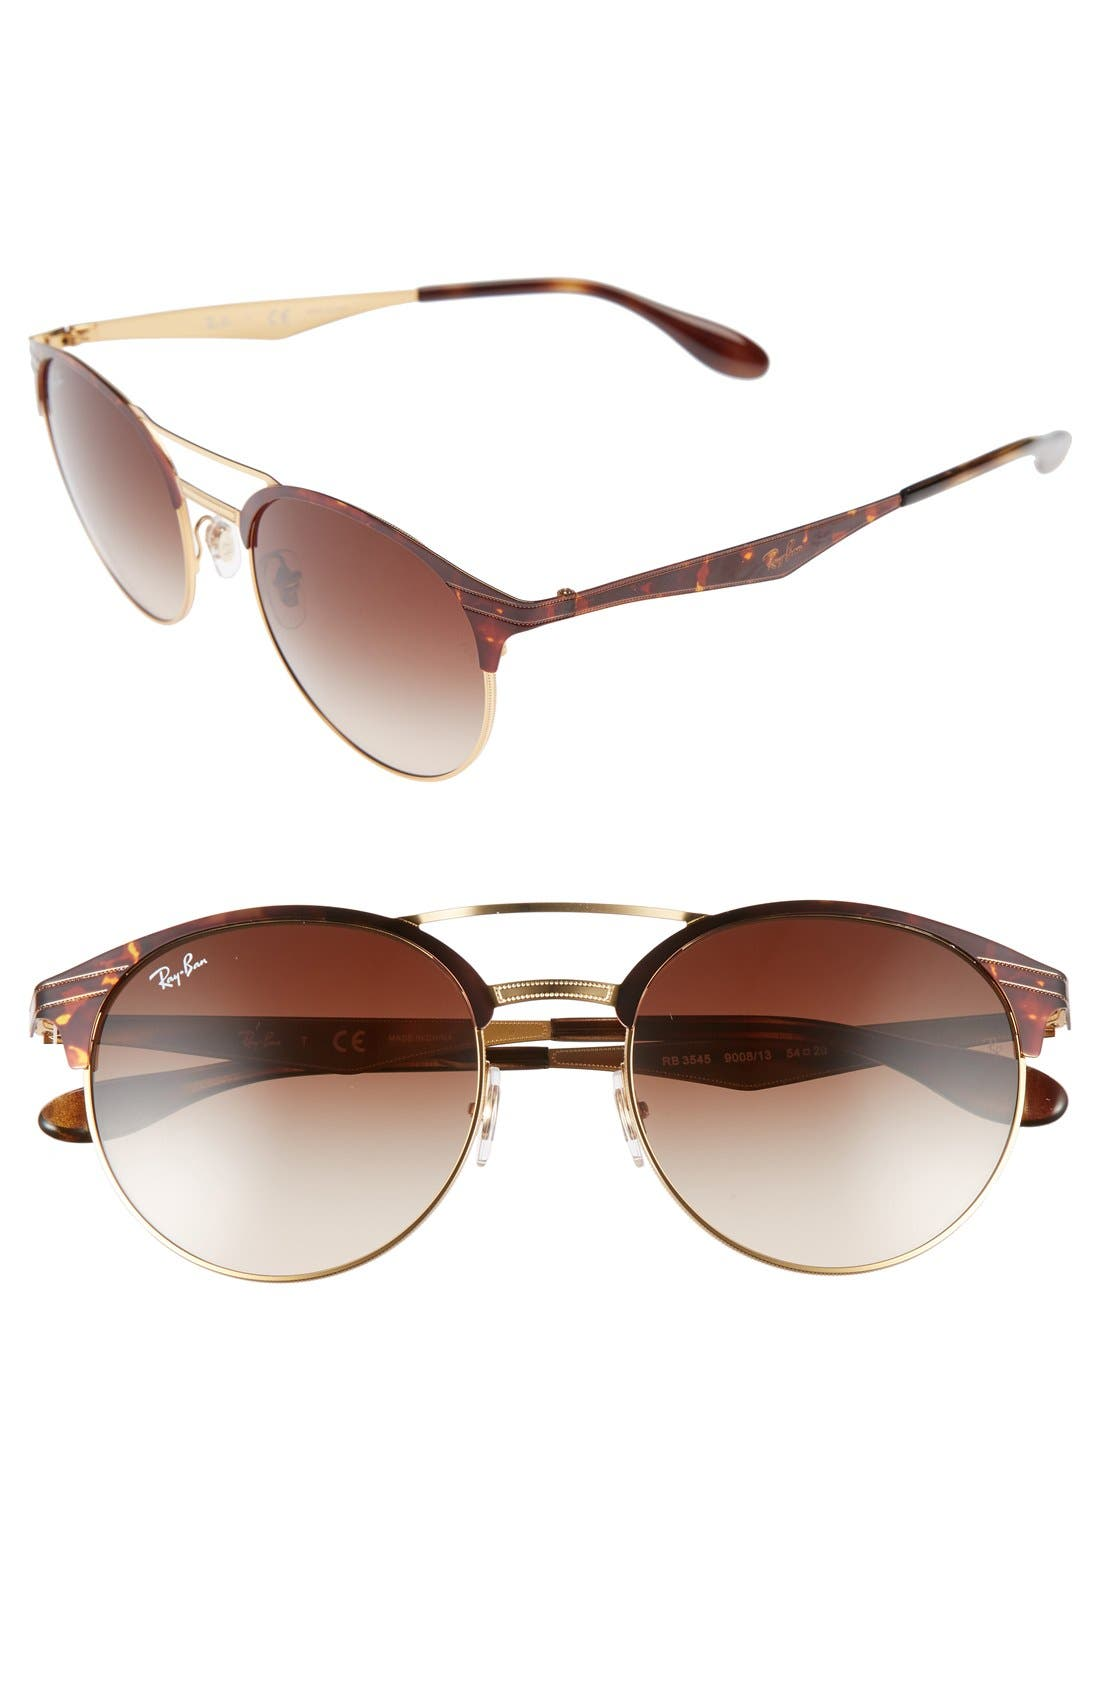 Highstreet 54mm Round Sunglasses,                         Main,                         color, Black/ Silver